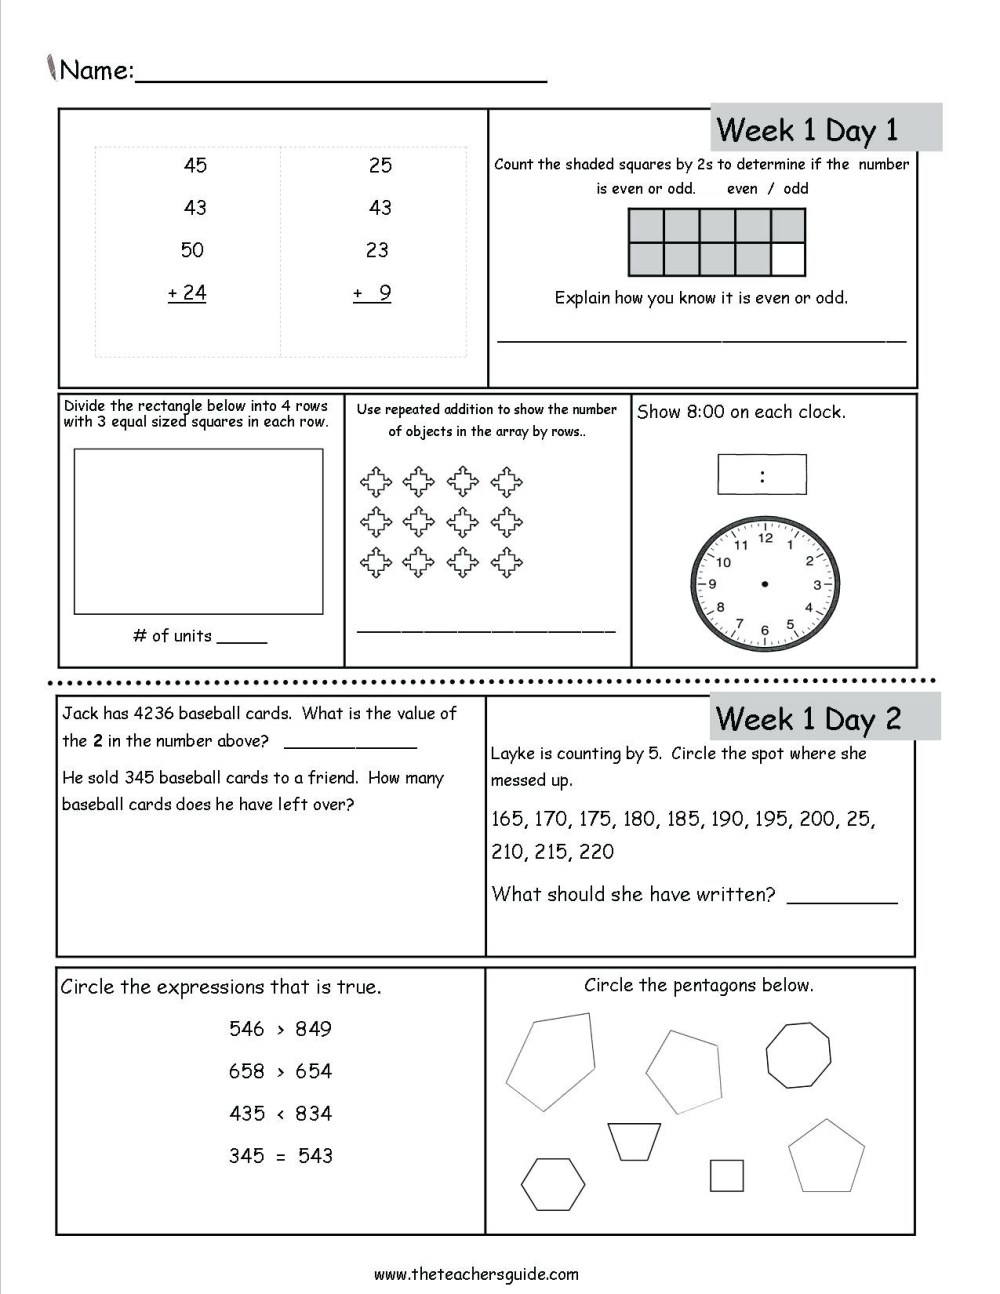 medium resolution of 3 Free Math Worksheets First Grade 1 Addition Add 3 Single Digit Number -  apocalomegaproductions.com